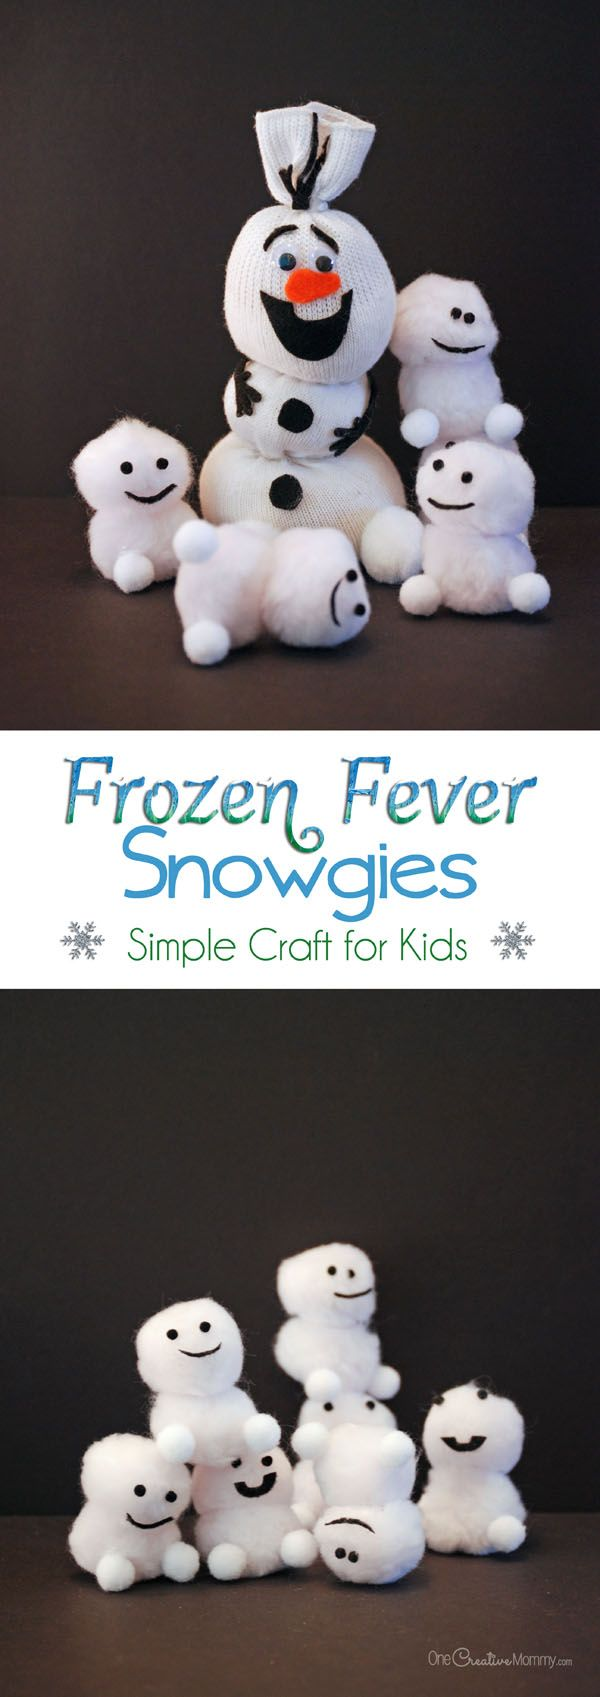 Quick and Easy Snowgies Craft for Kids inspired by Frozen Fever! {Soon your house will be covered with these adorable baby snowmen!} Tutorial on OneCreativeMommy.com